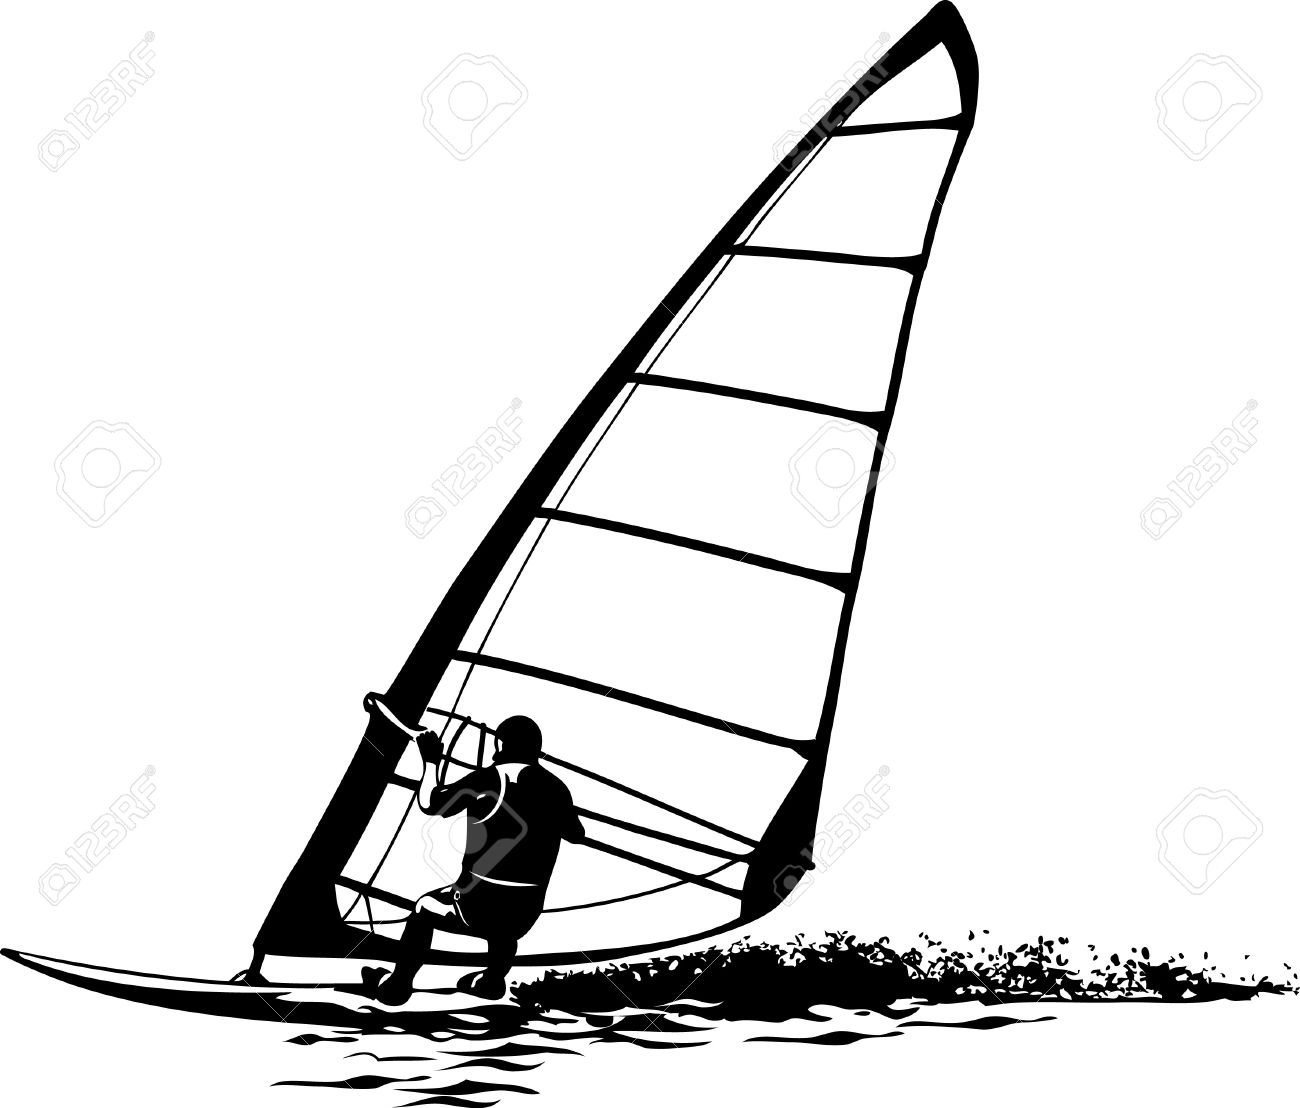 Windsurfing drawing